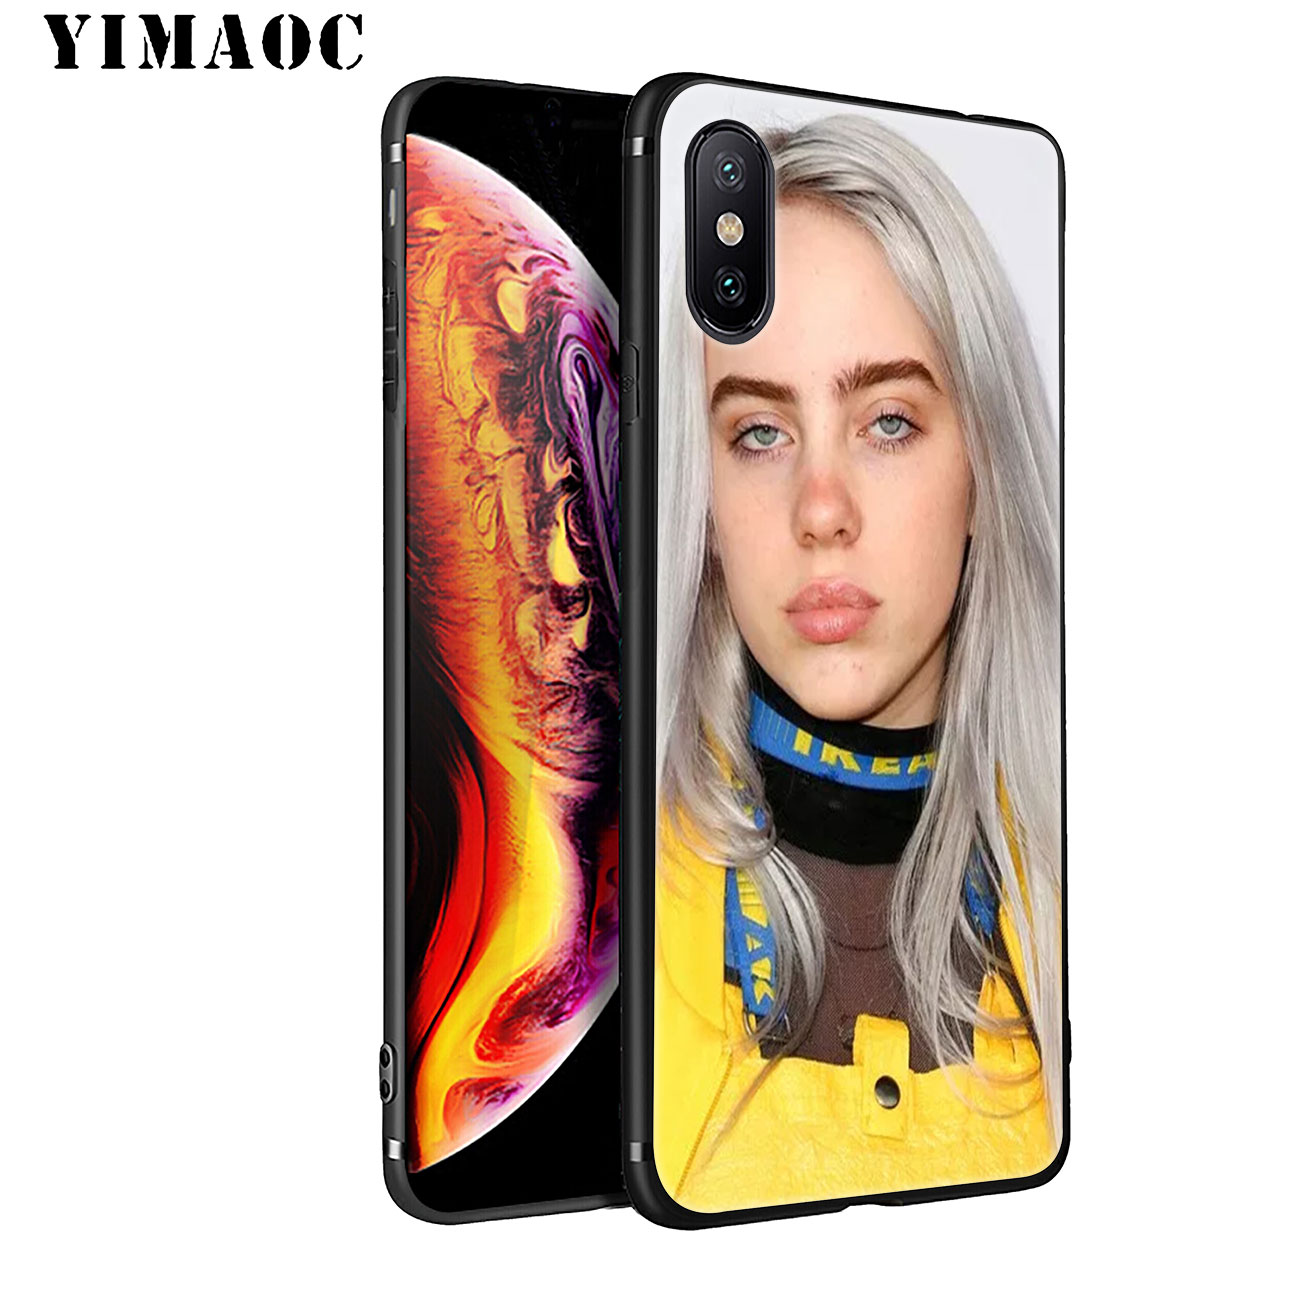 YIMAOC Billie Eilish Hot Music Soft Silicone Phone Case for iPhone 11 Pro XS Max XR X 6 6S 7 8 Plus 5 5S SE 10 TPU Black Cover in Fitted Cases from Cellphones Telecommunications